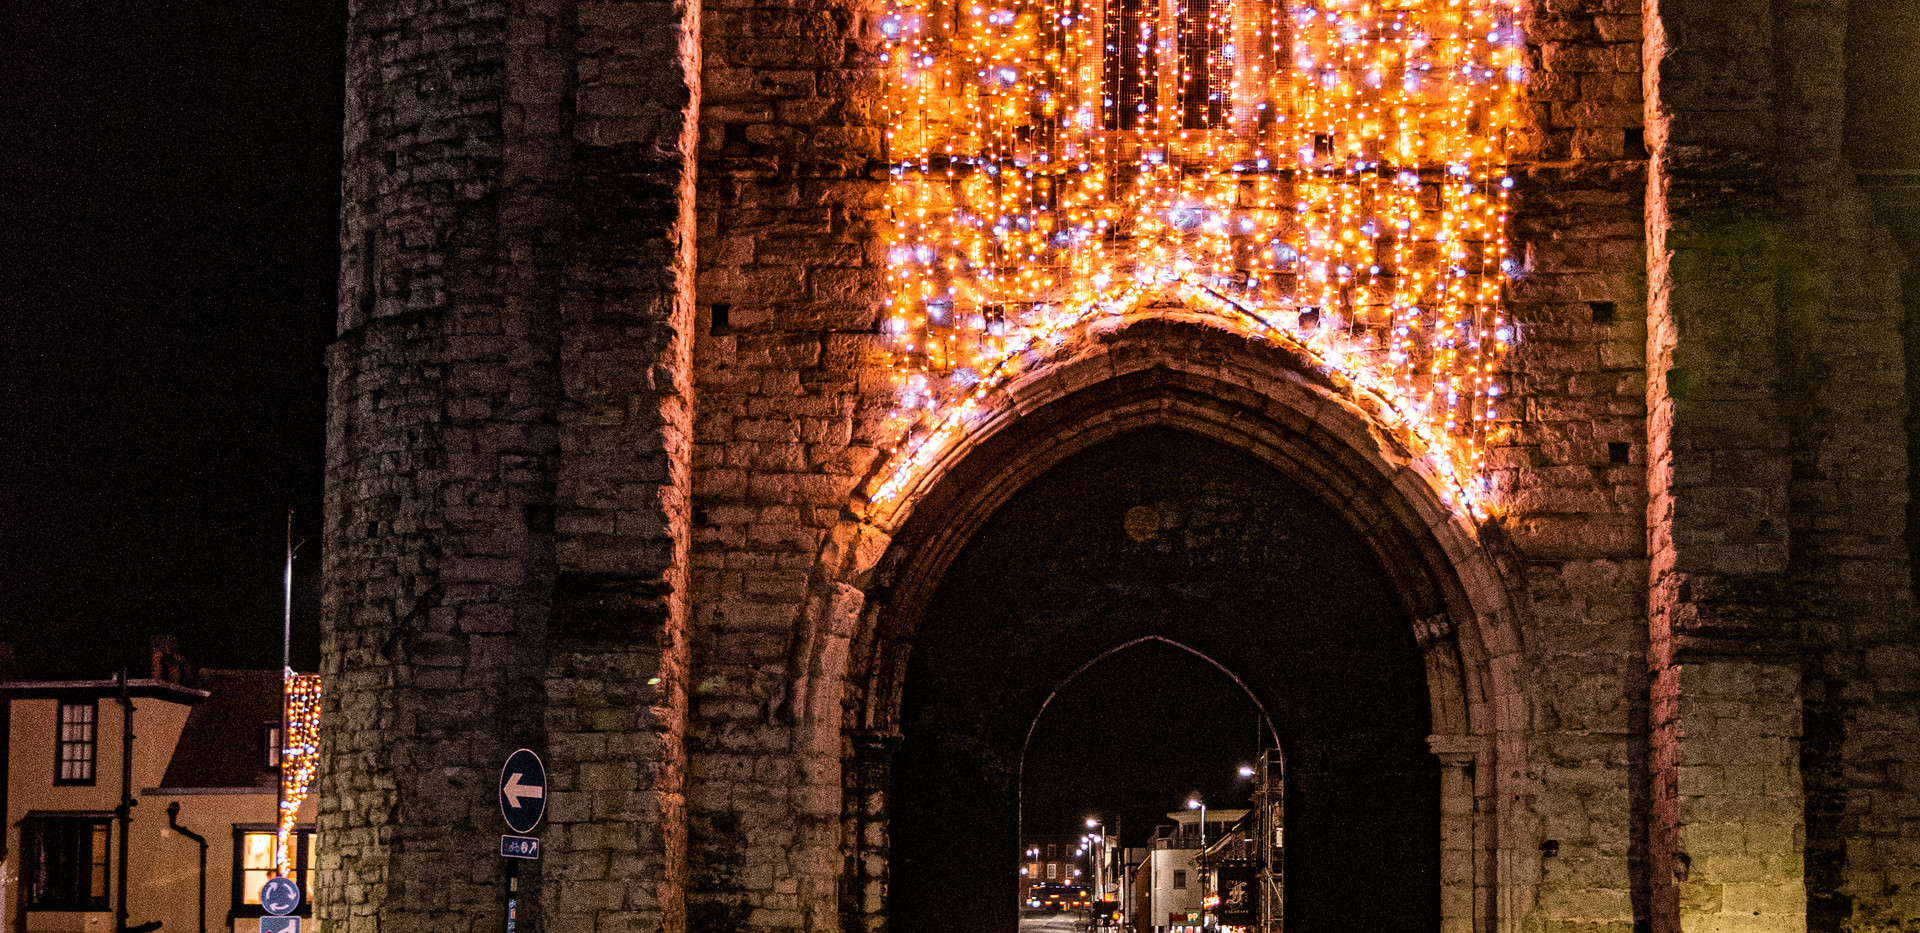 4. Christmas Lights In Canterbury